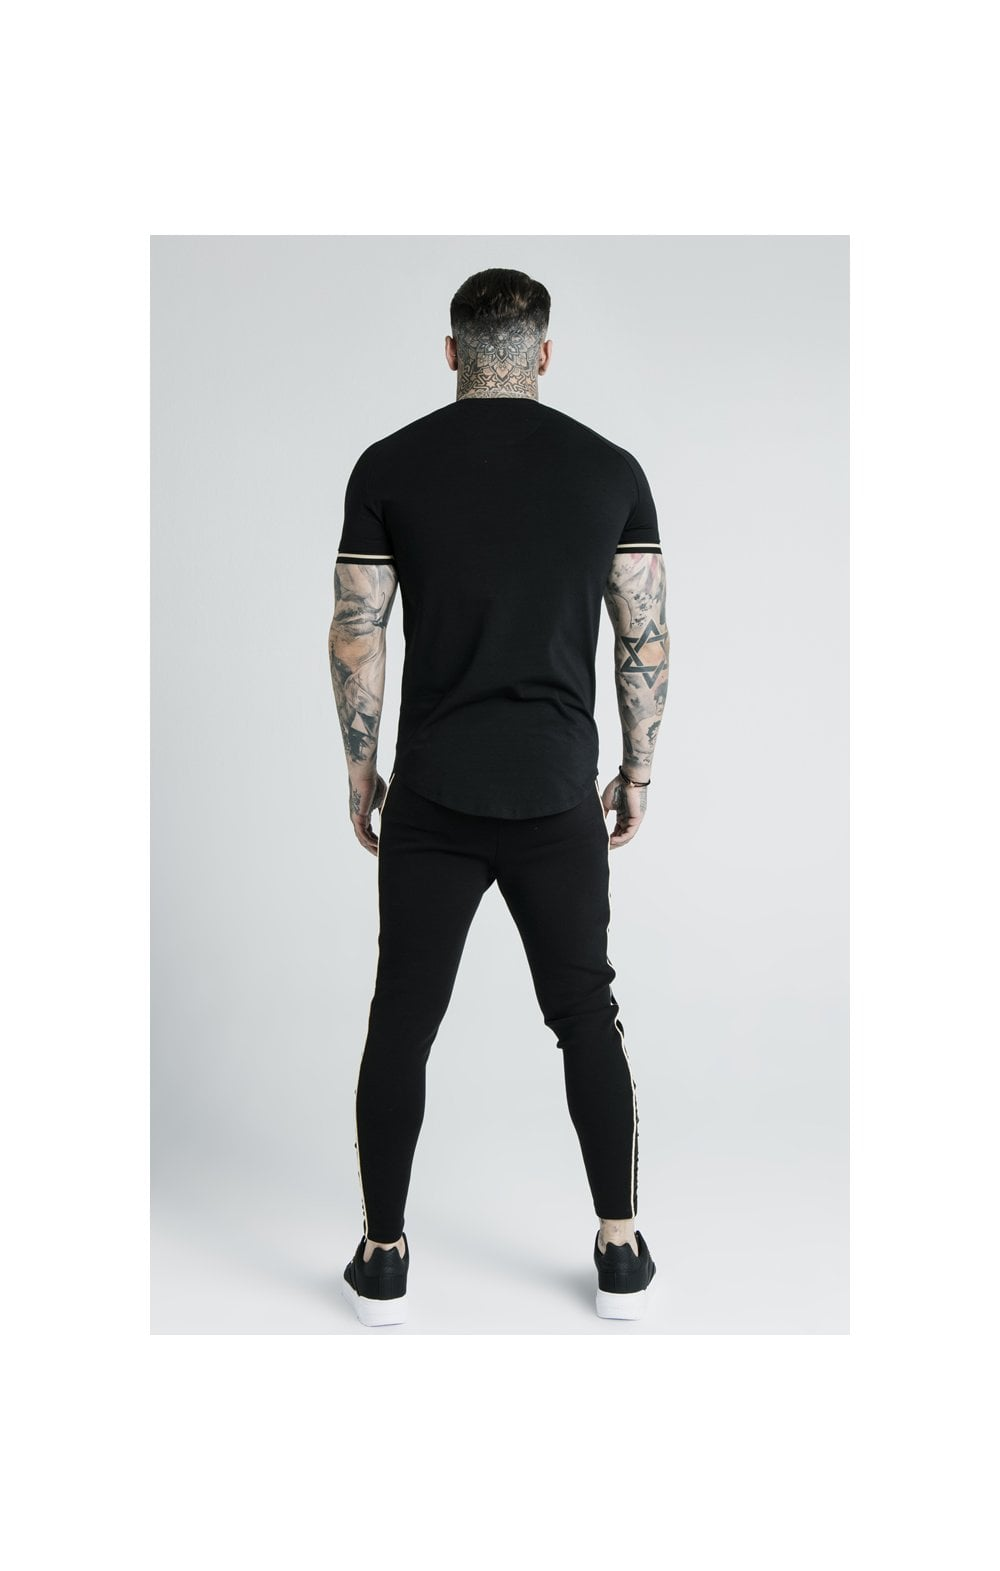 SikSilk X Dani Alves S/S Inset Tech Tee – Black (9)